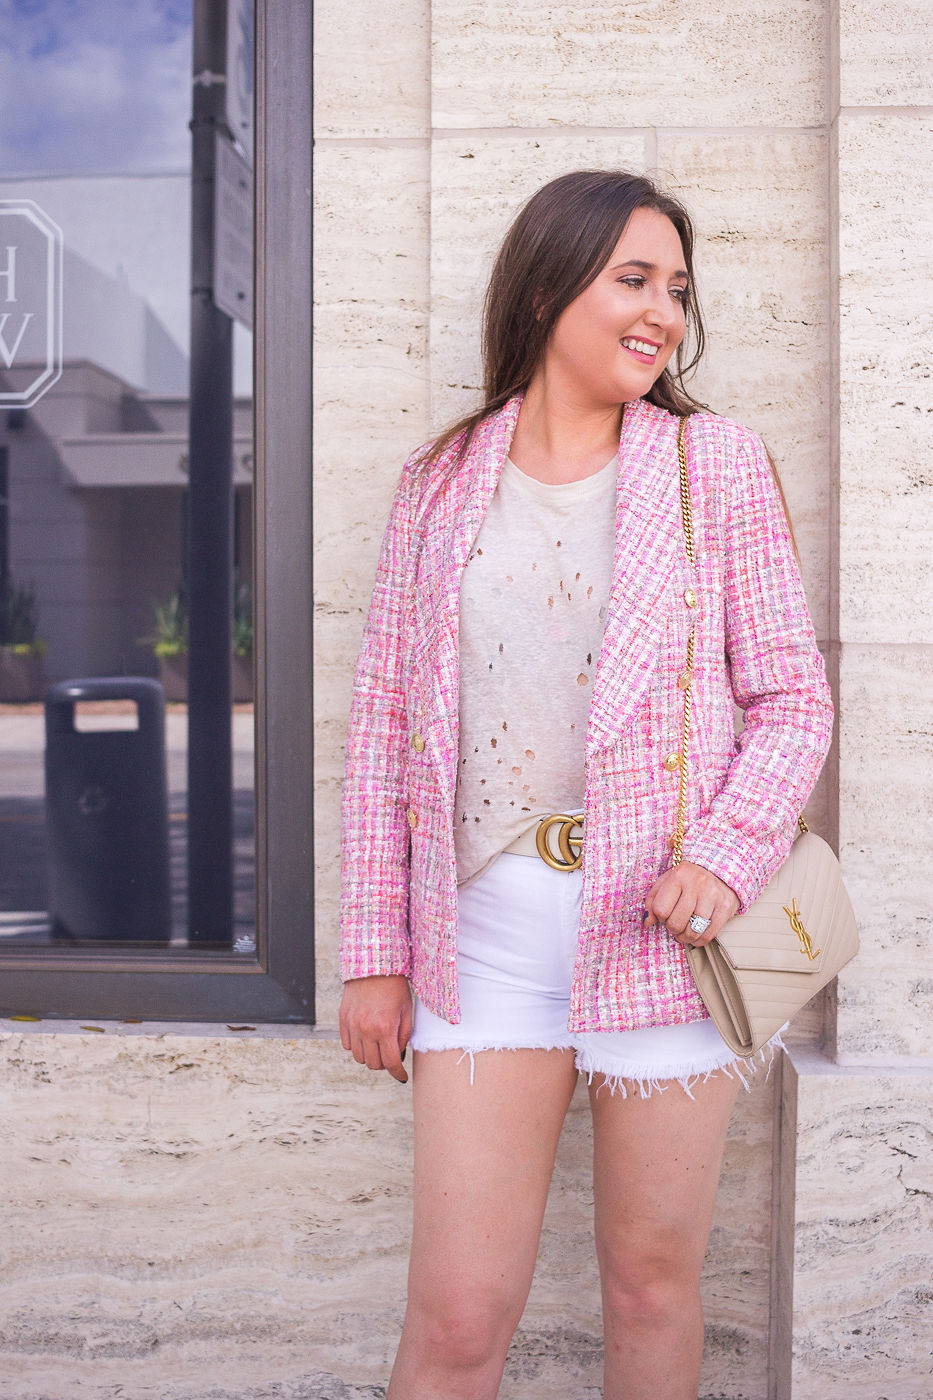 How To Instantly Look Stylish Everyday With Zero Effort, aqua bloomingdales blaxer, chanel dupe blazer, summer outfit, white gucci bely, ysl woc, nude ysl woc, pink gucci mules, miami style